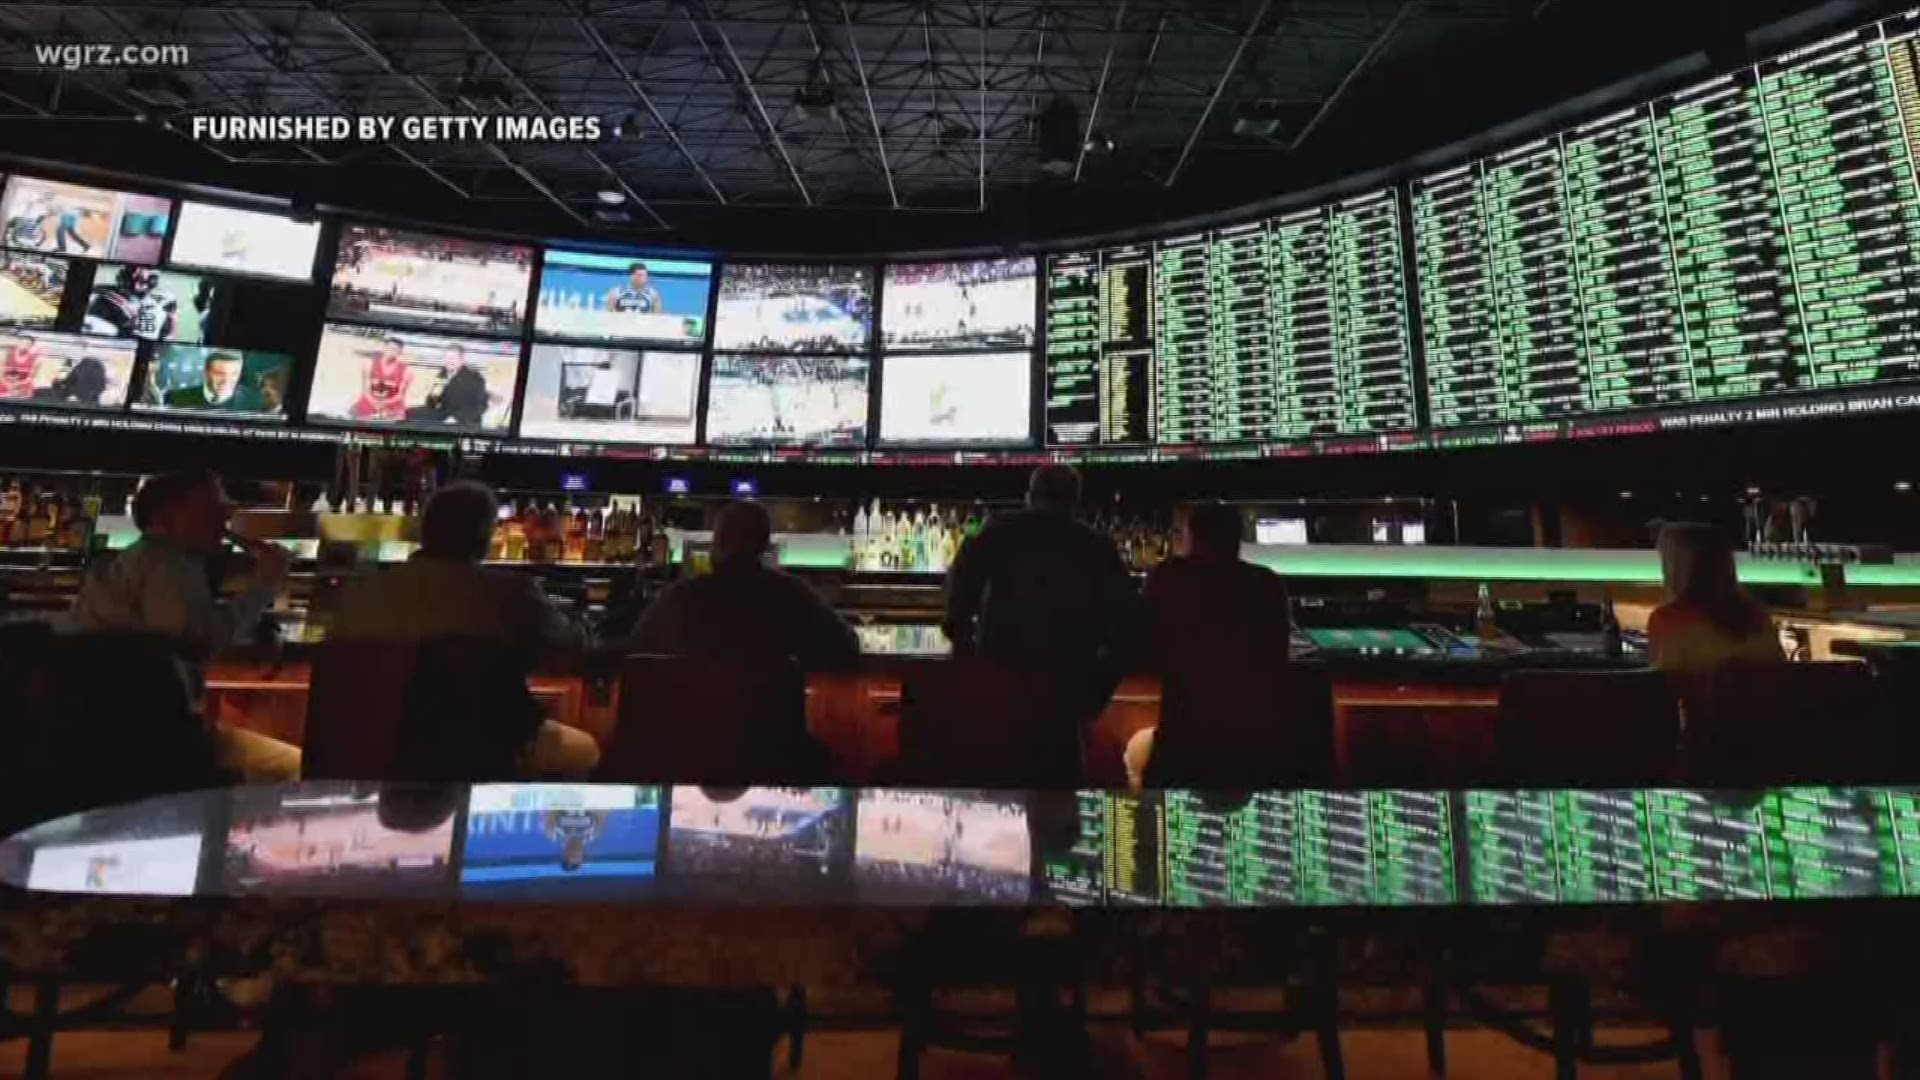 Welch on bet mean nfl betting trends 2021